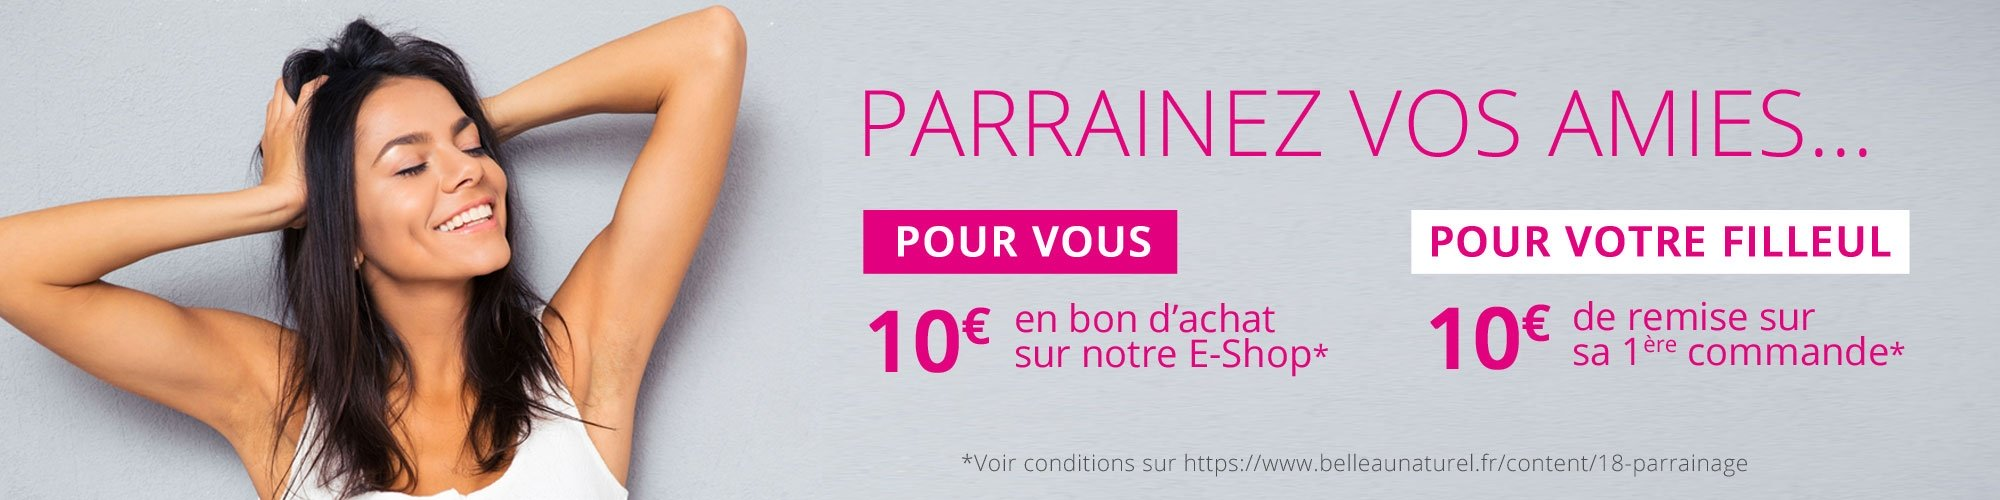 1 amie parrainée = 10 € offert sur notre eshop !